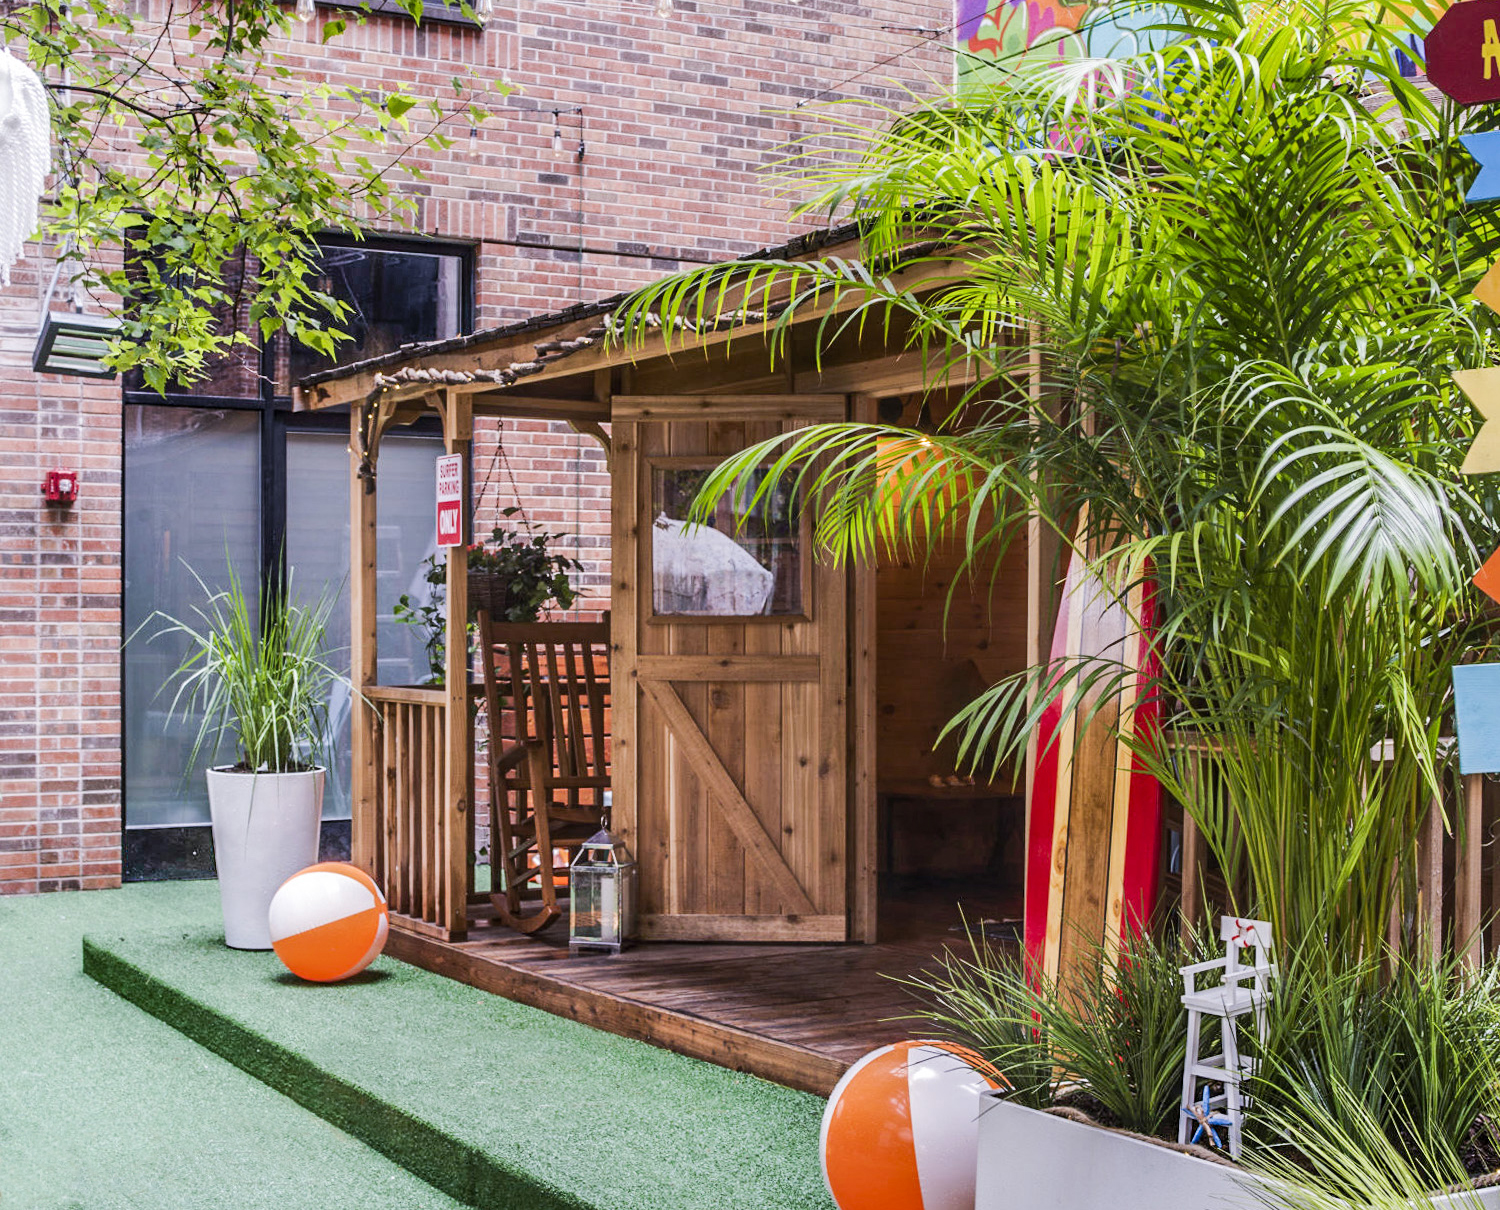 Cedar cabins in Arlo SoHo outdoor Courtyard with a red surfboard leaning on the right side of the cabin and ground is covered with green astroturf and green dune palm leaves to the right and orange and white beach balls